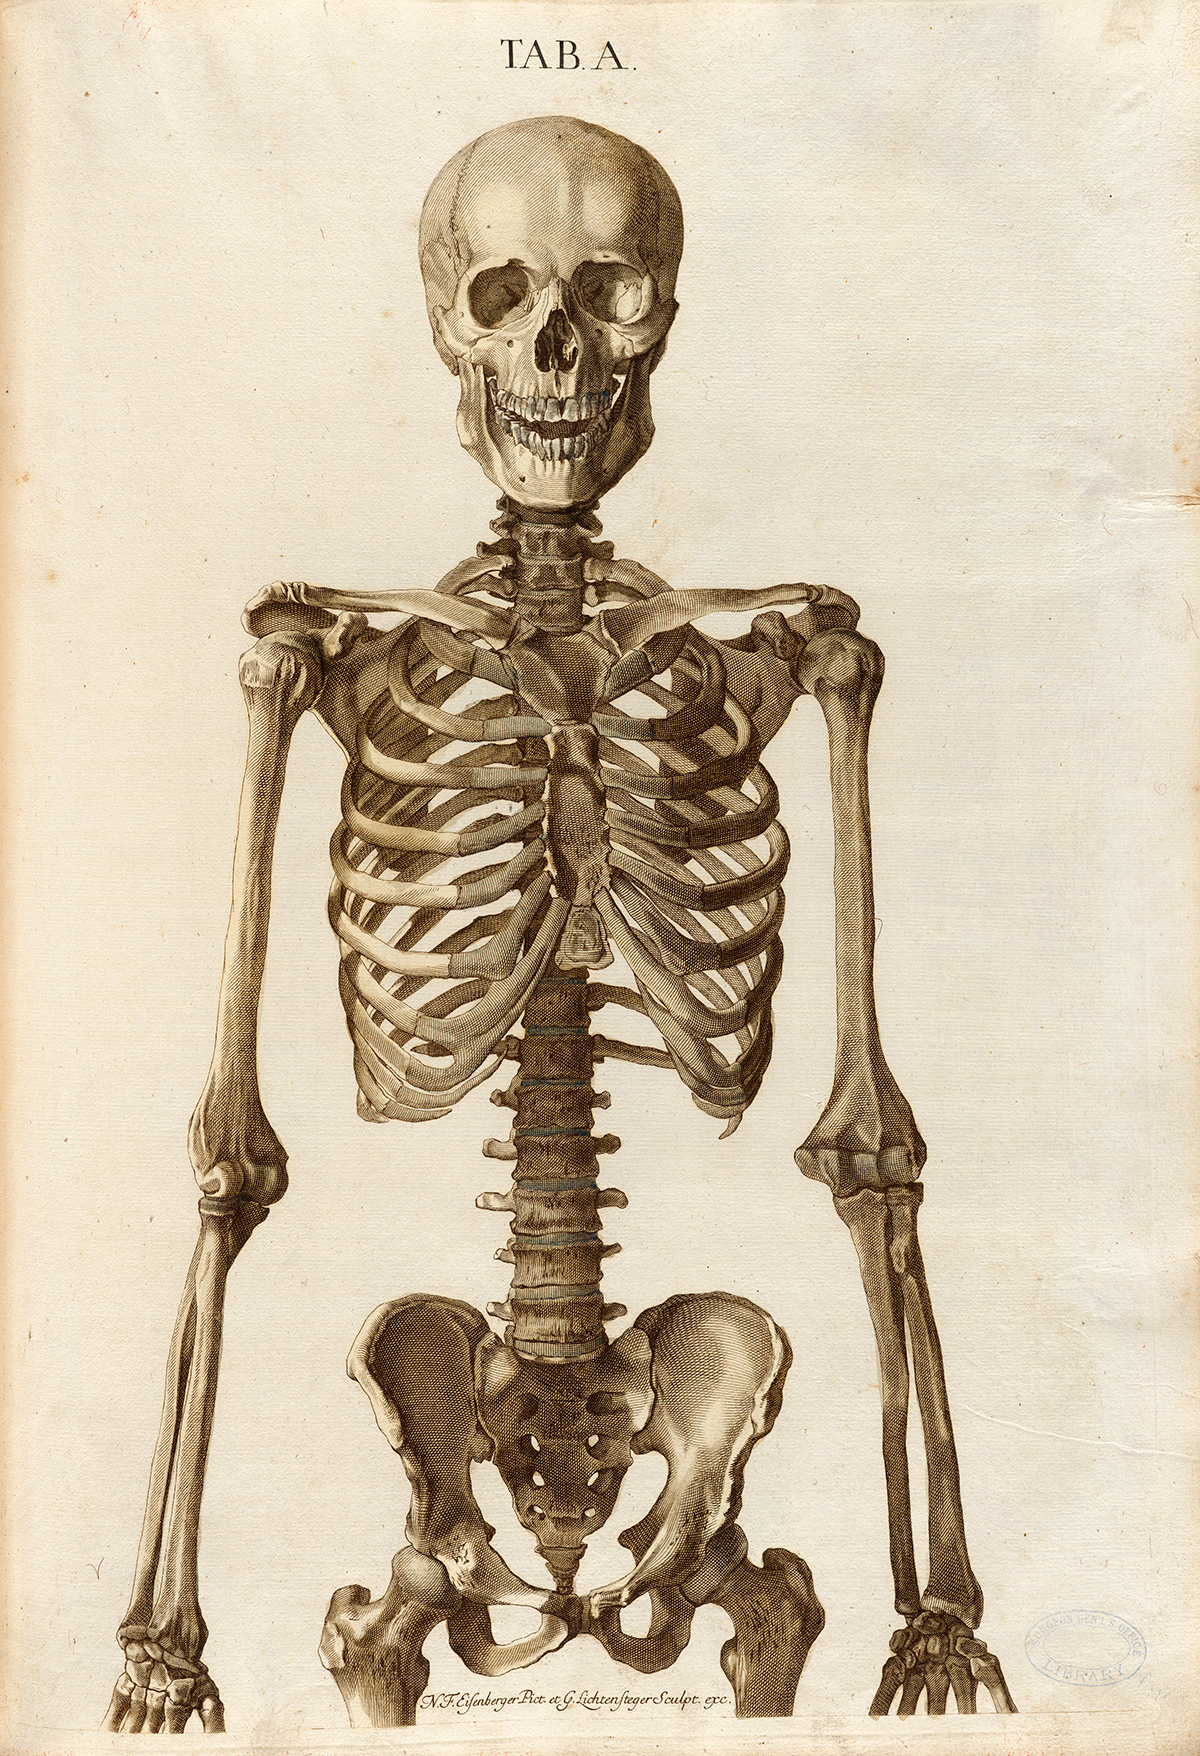 Historical Anatomies on the Web: Christoph Jacob Trew